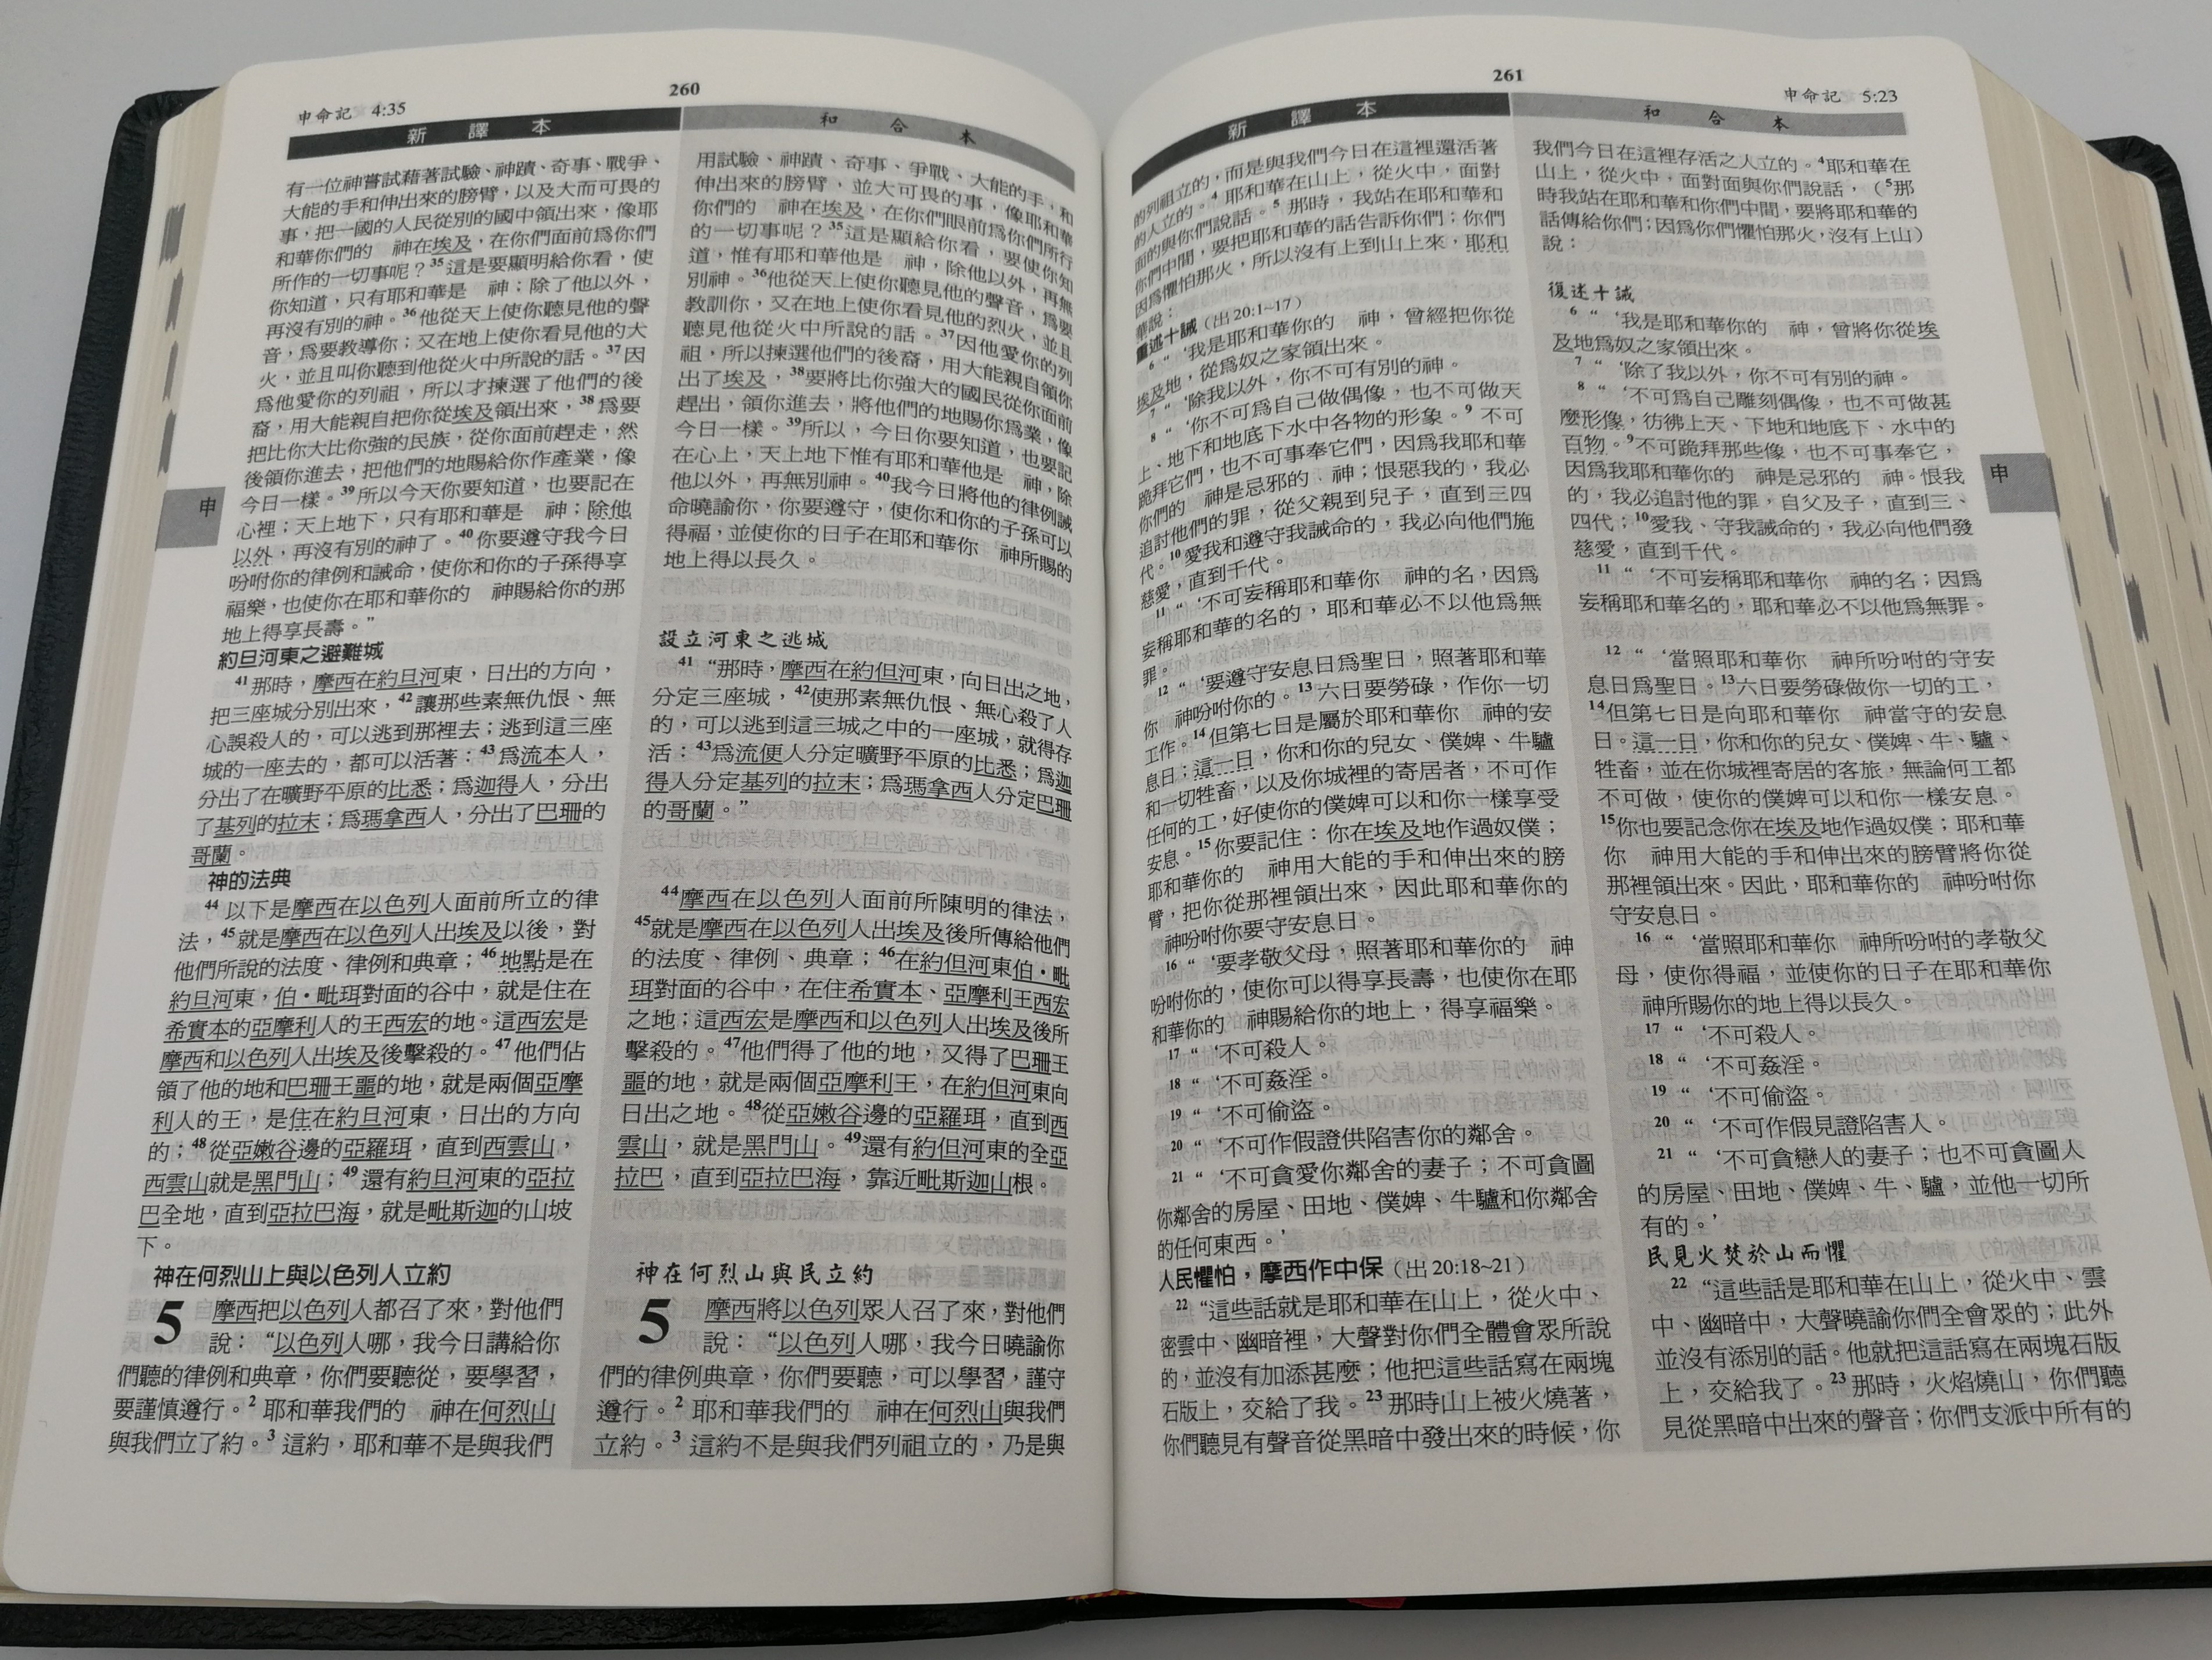 1-black-leather-new-chinese-version-parallel-chinese-union-version-bible-ncv-cuv-bible-7-.jpg